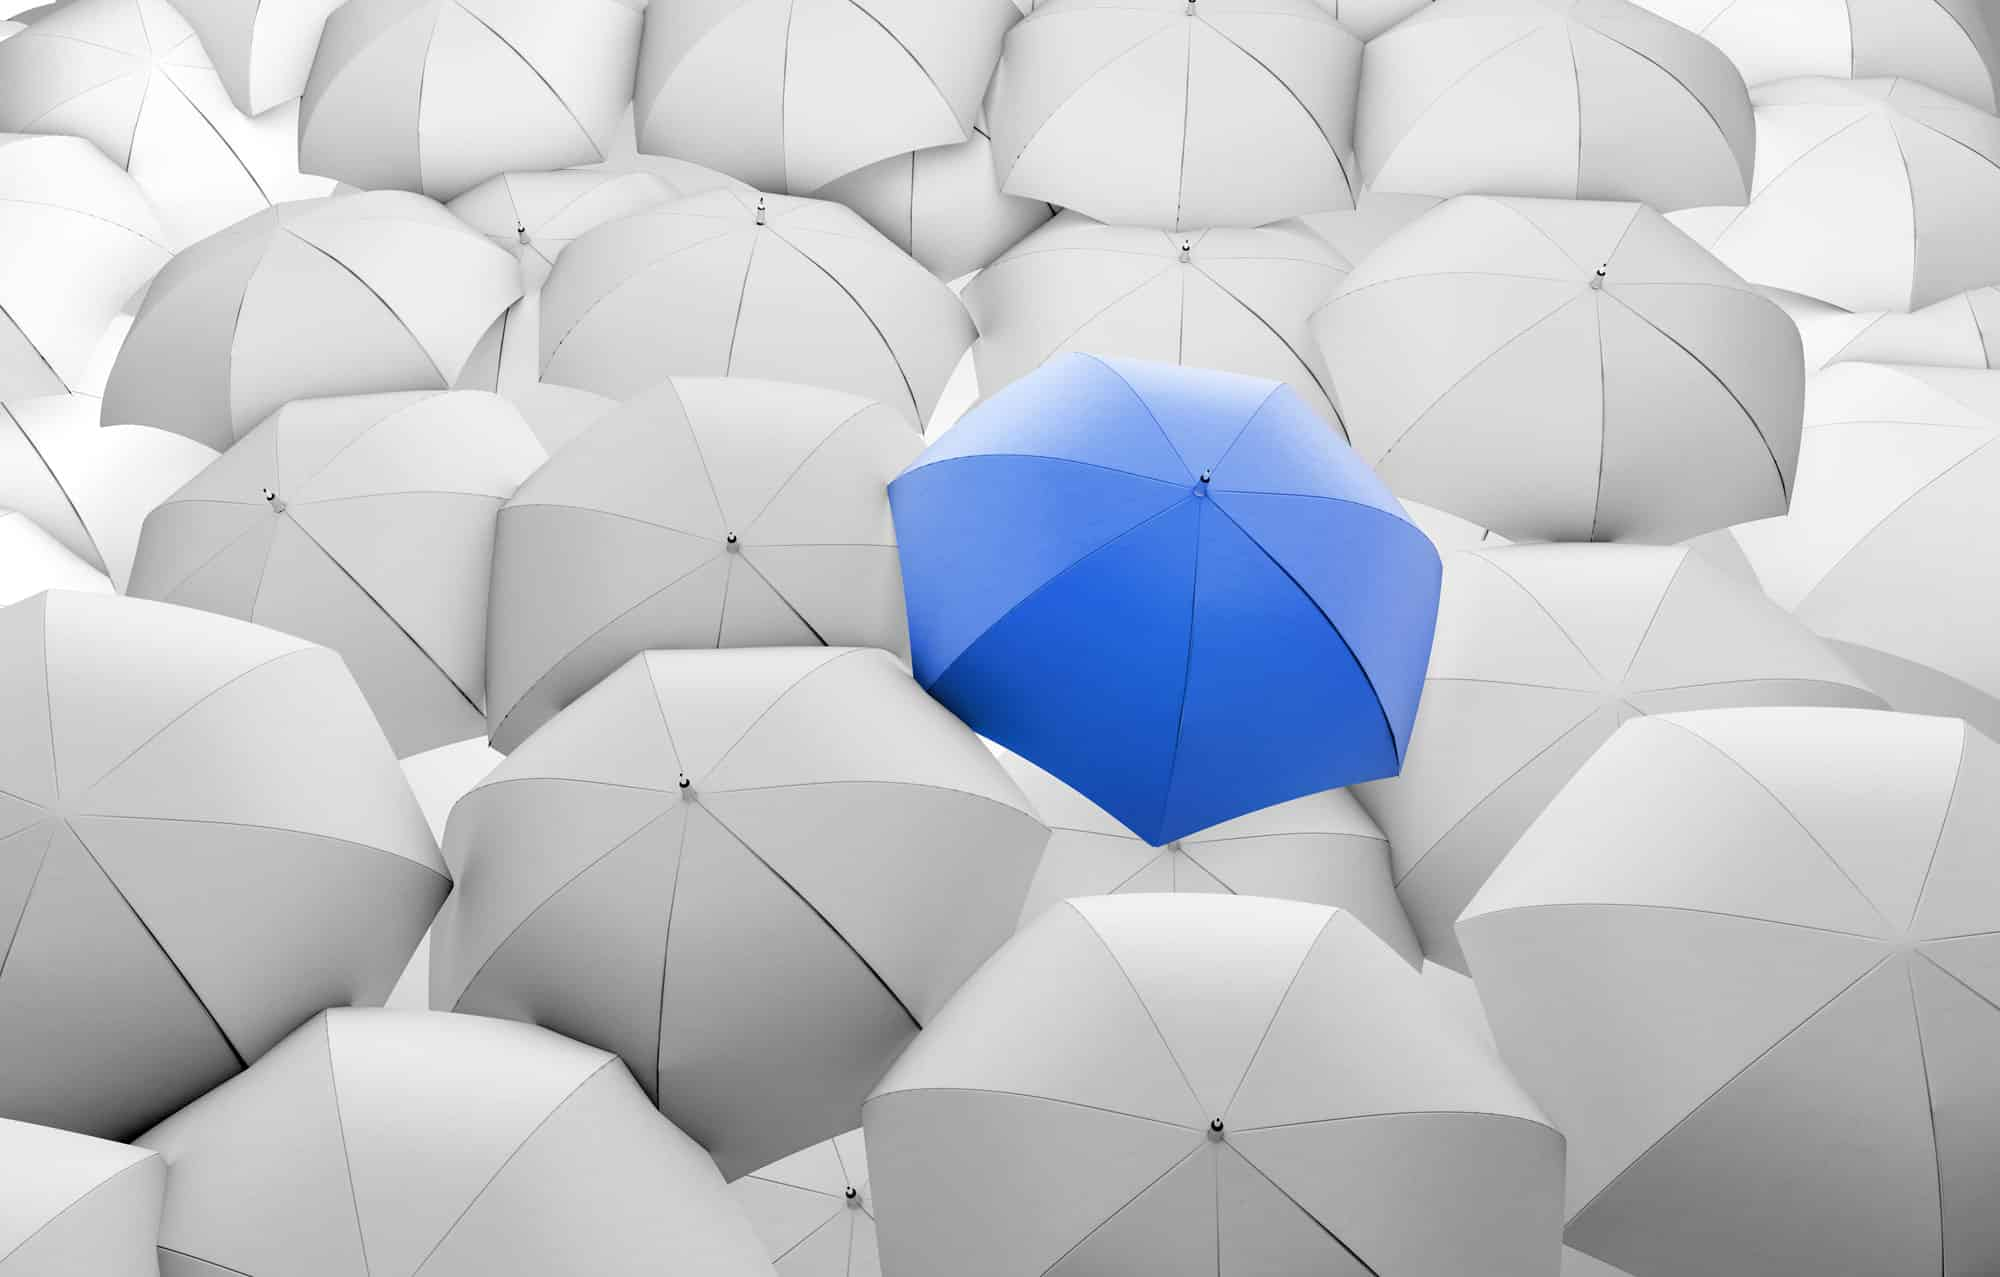 One blue umbrella surrounded by white umbrellas